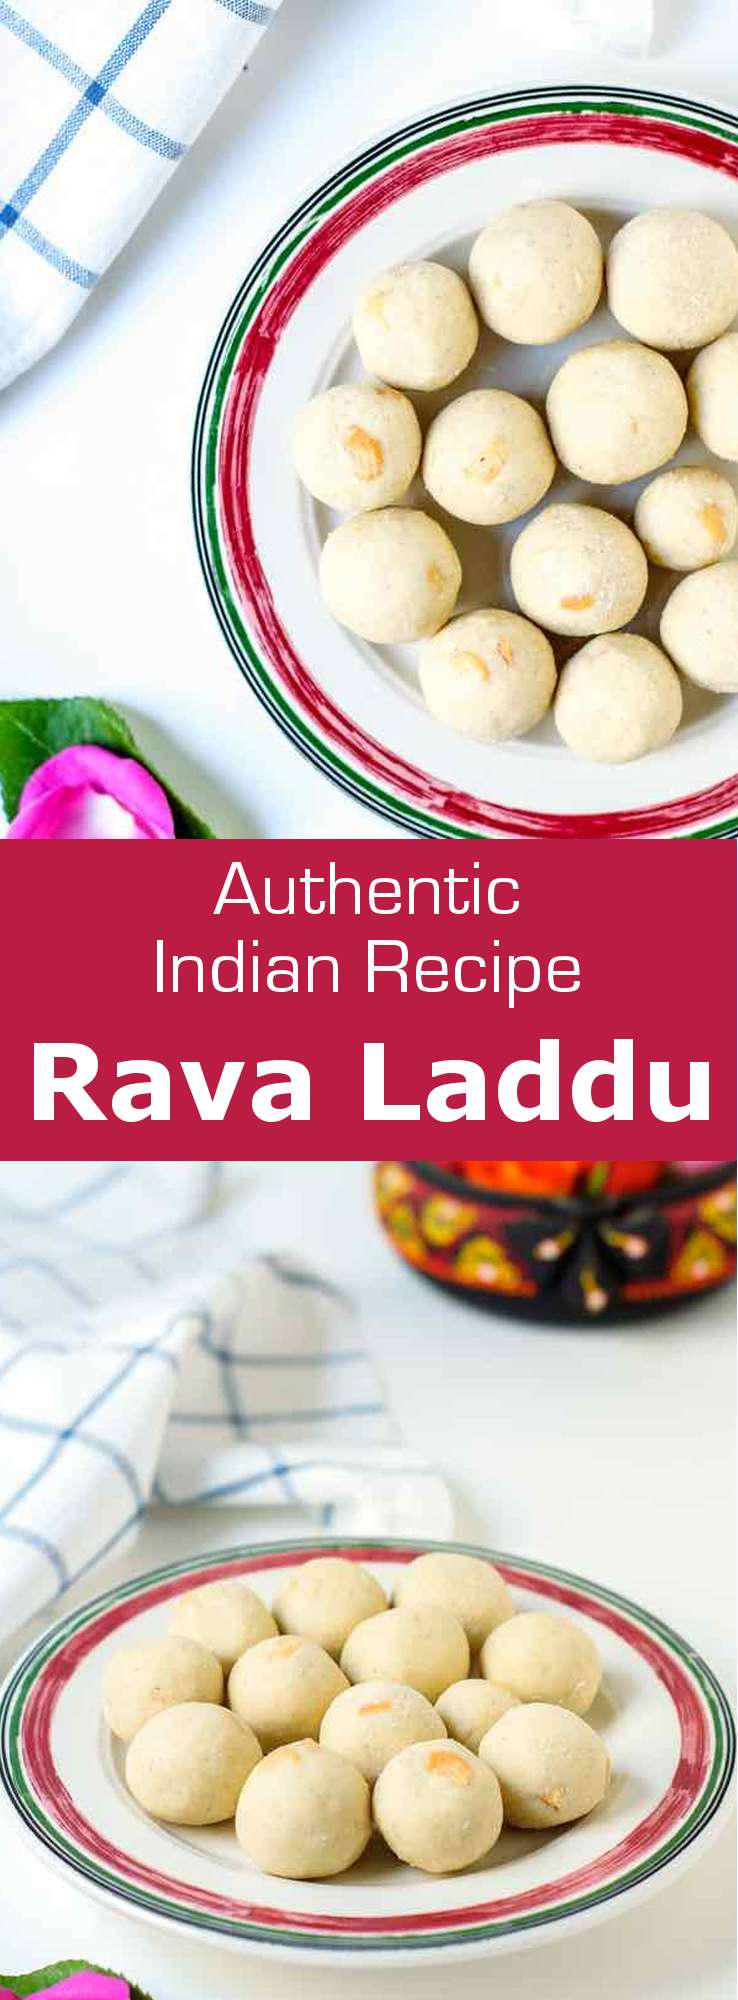 Rava laddu (rava ladoo) is a bite-sized, traditional Indian dessert with semolina, sugar & nuts. It is usually made during the festive season.